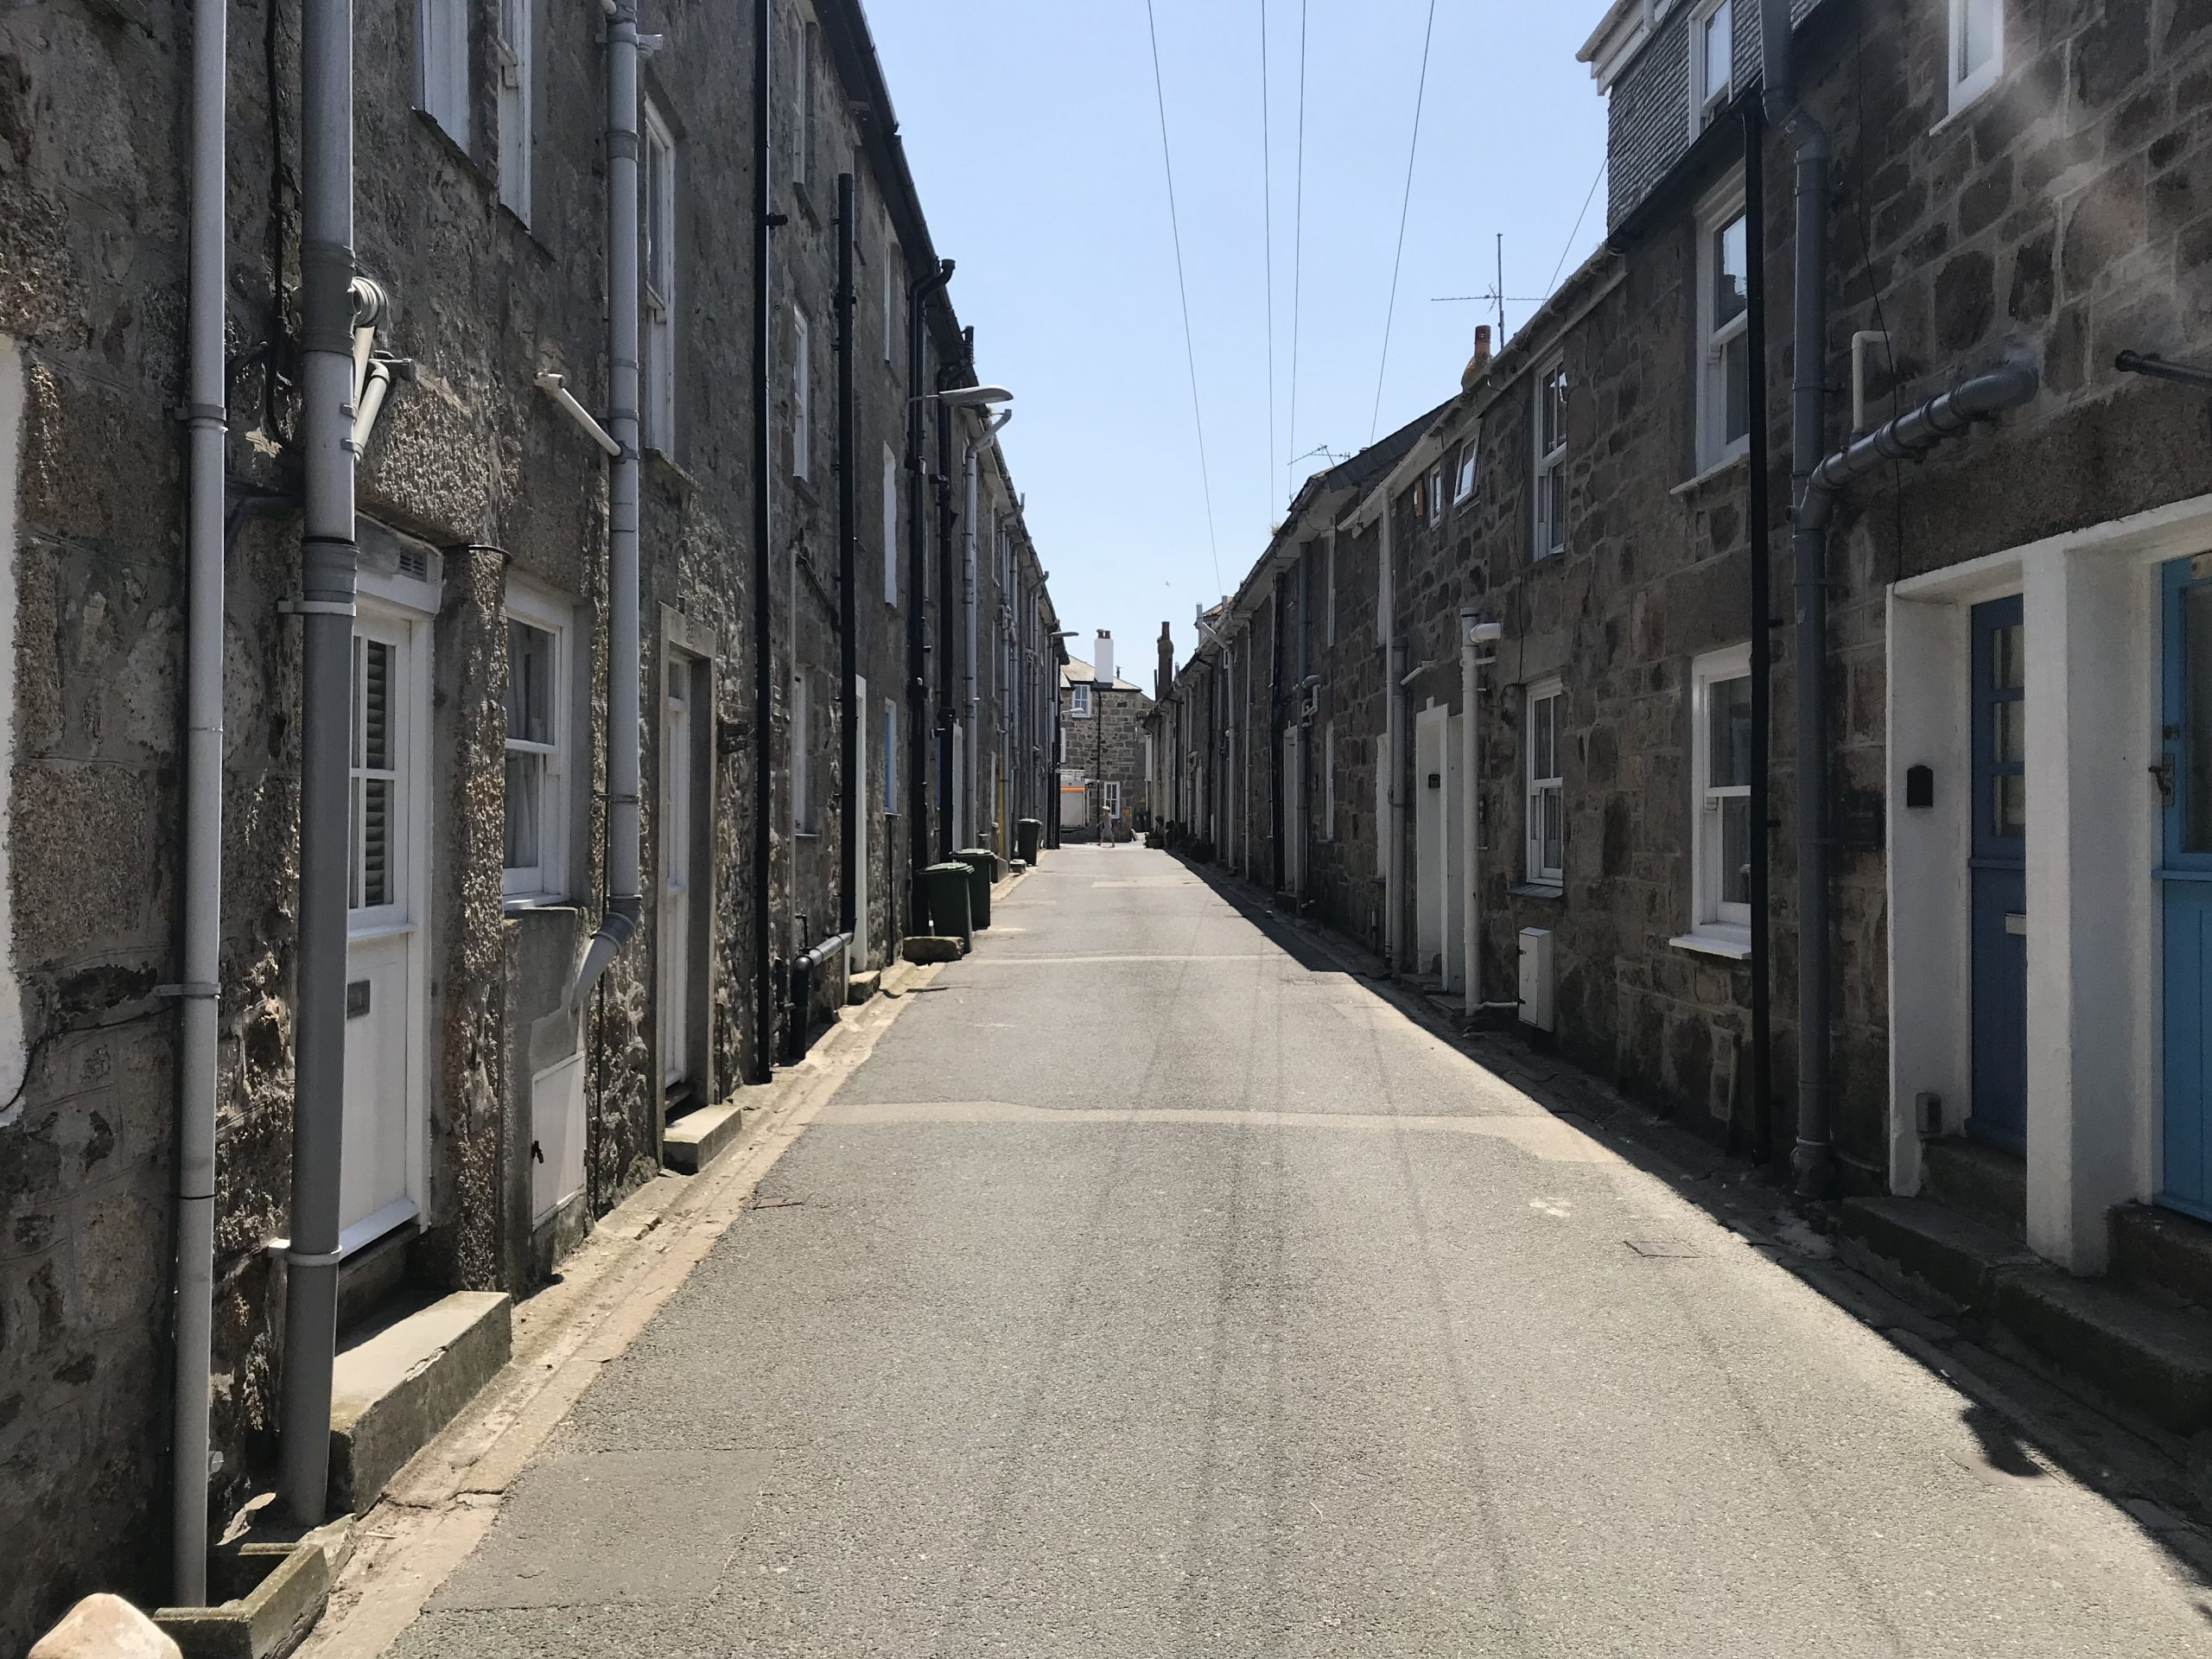 Island Road in St Ives on a sunny day